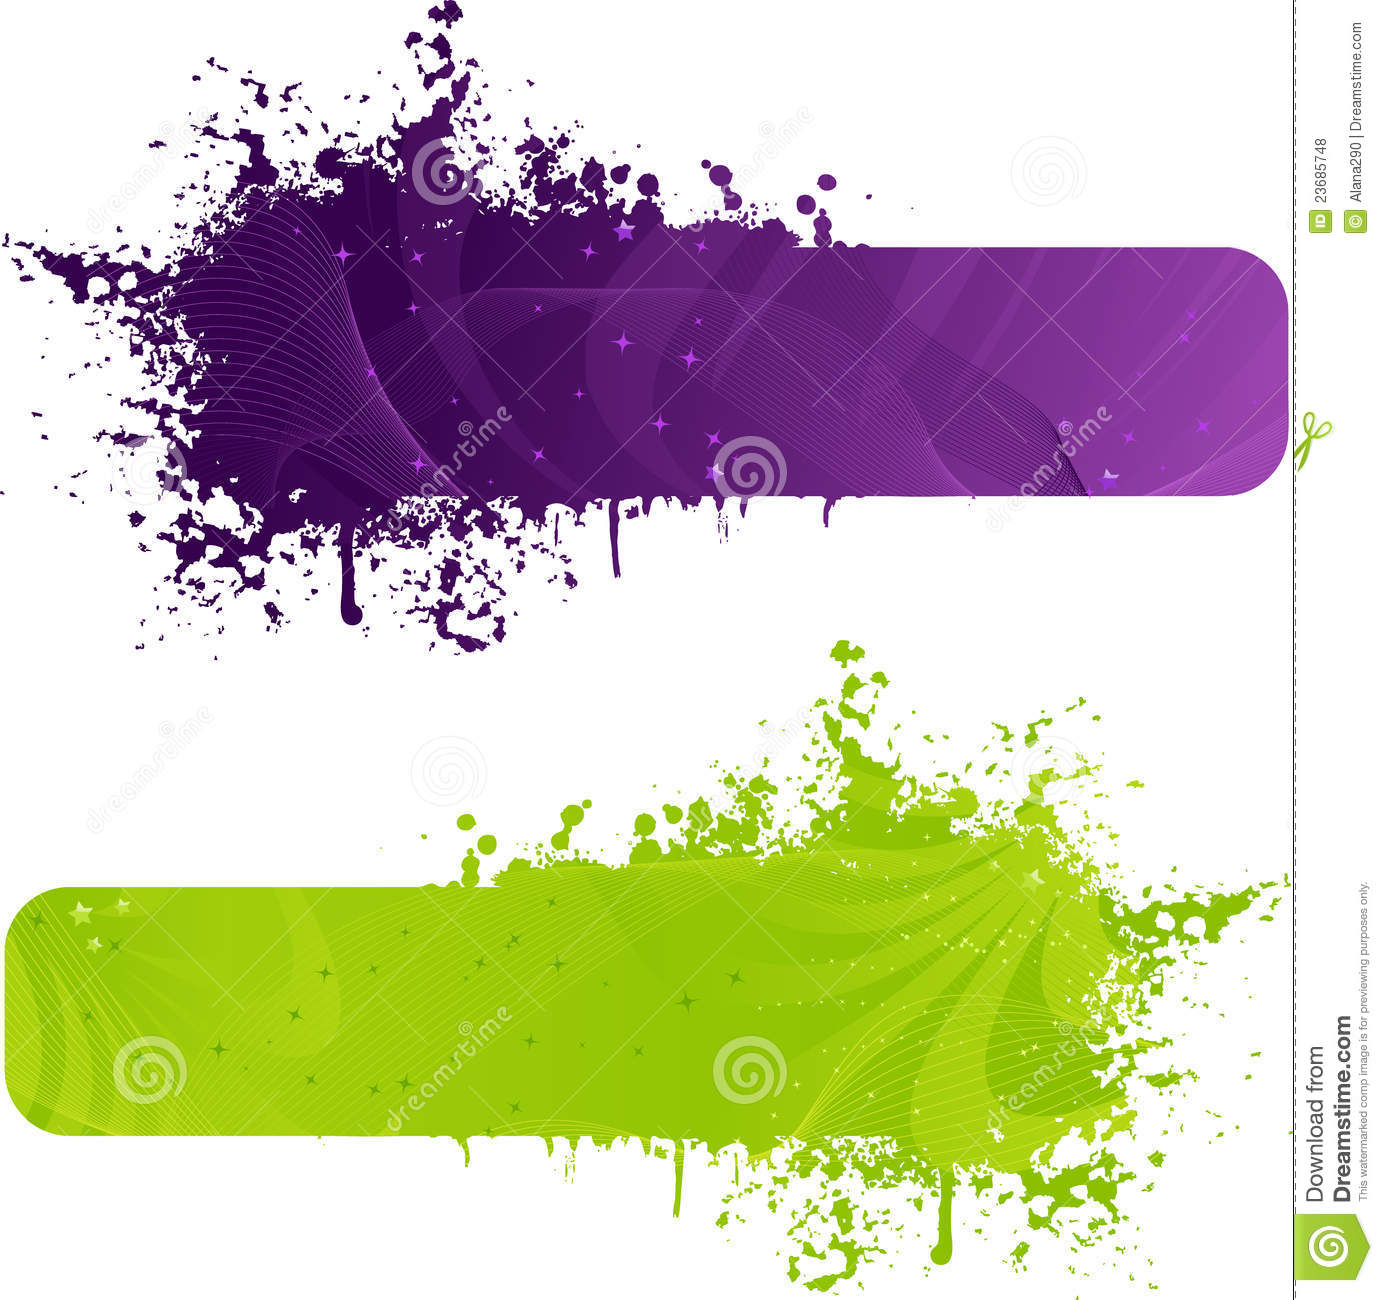 Two Grunge Banner In Purple And Green Colors Royalty Free Stock ...